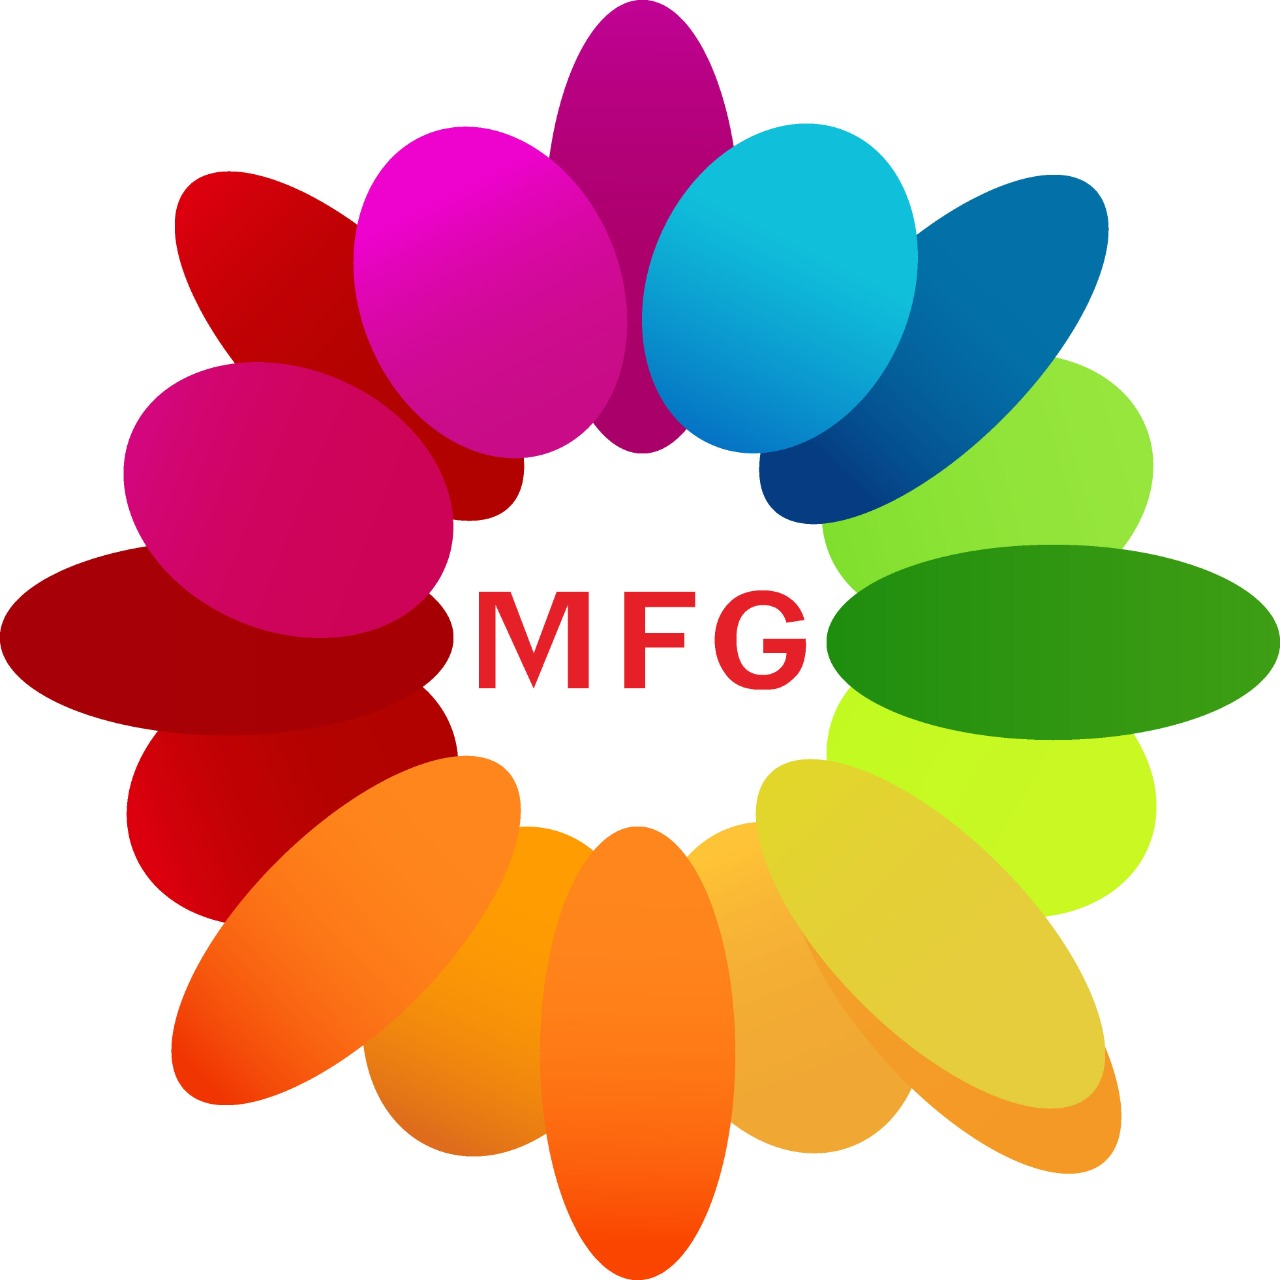 bunch of yellow lilies with box of 24 pcs of ferrero rocher chocolate